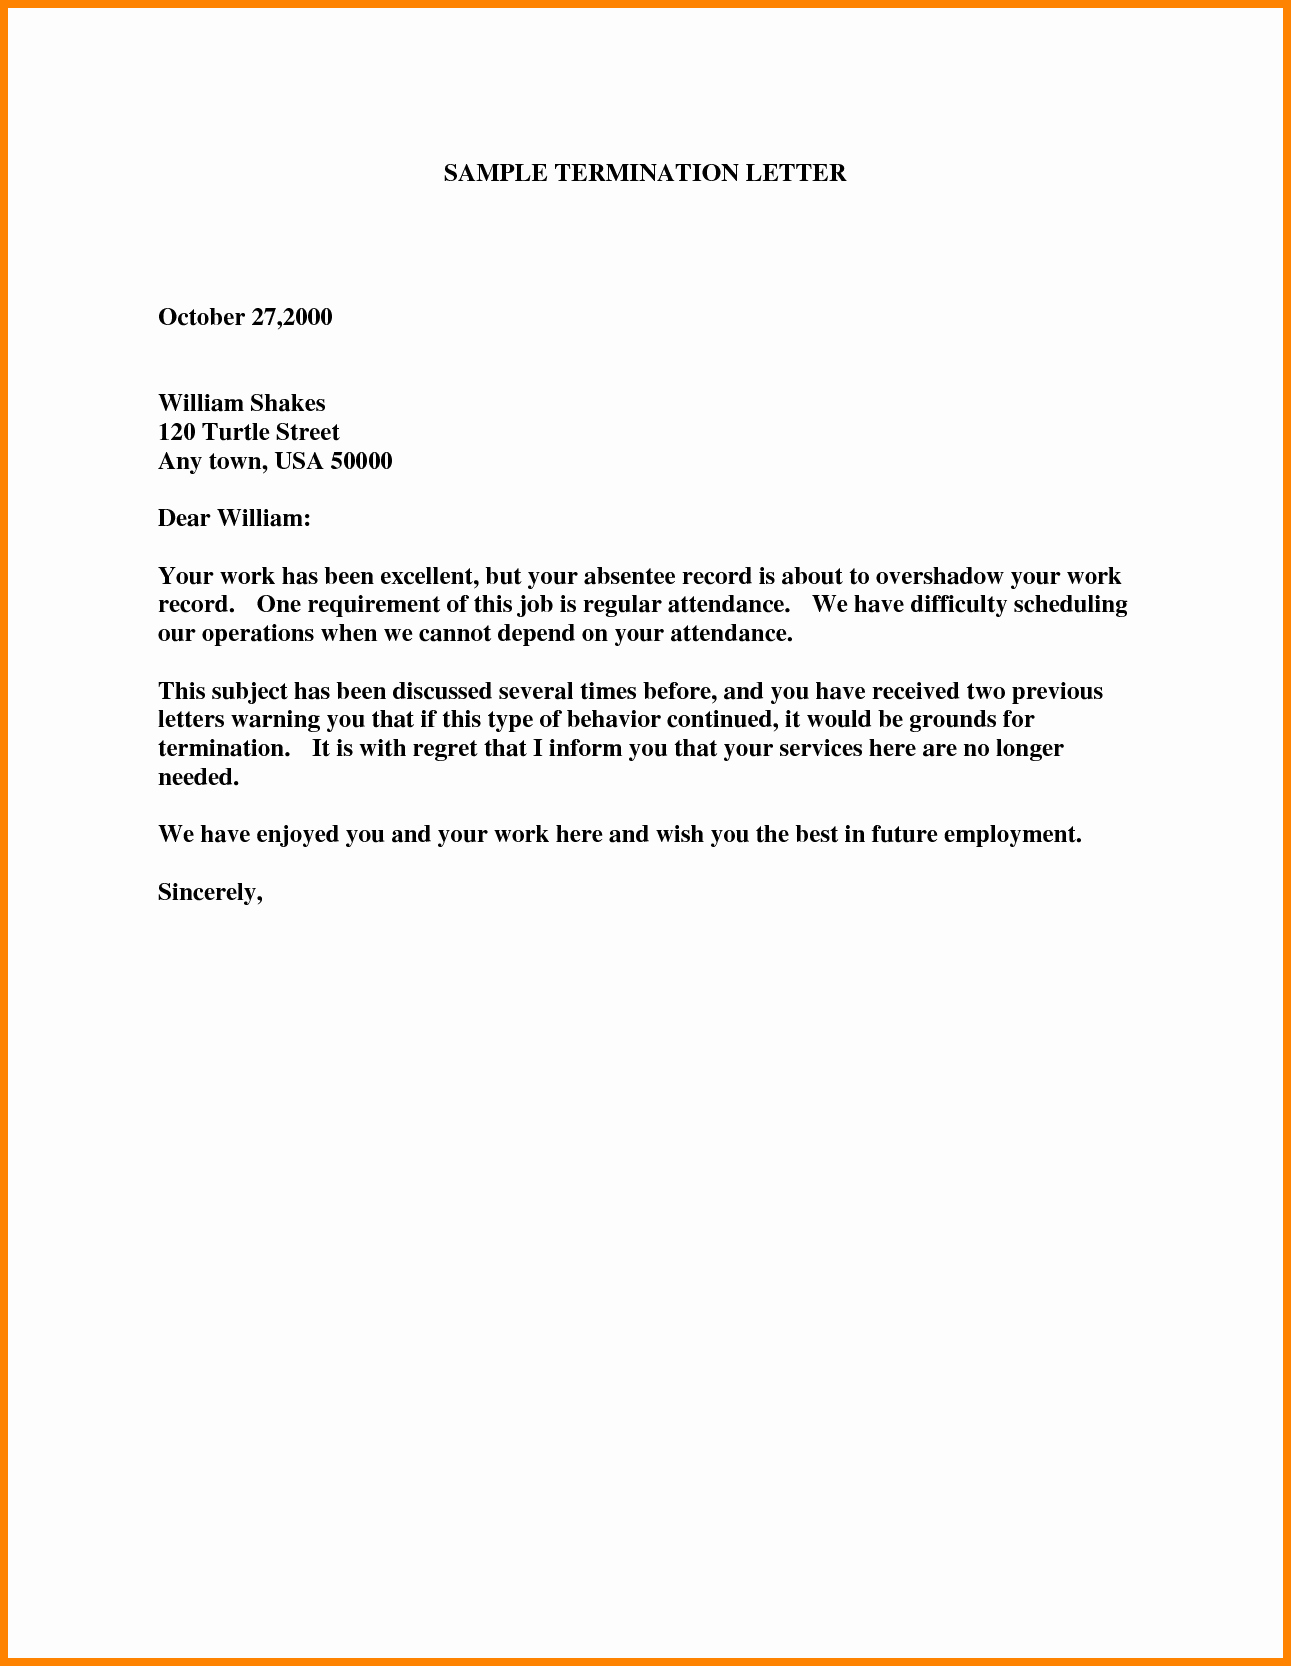 Employment Termination form Template Inspirational 8 Employee Termination Letter Templates